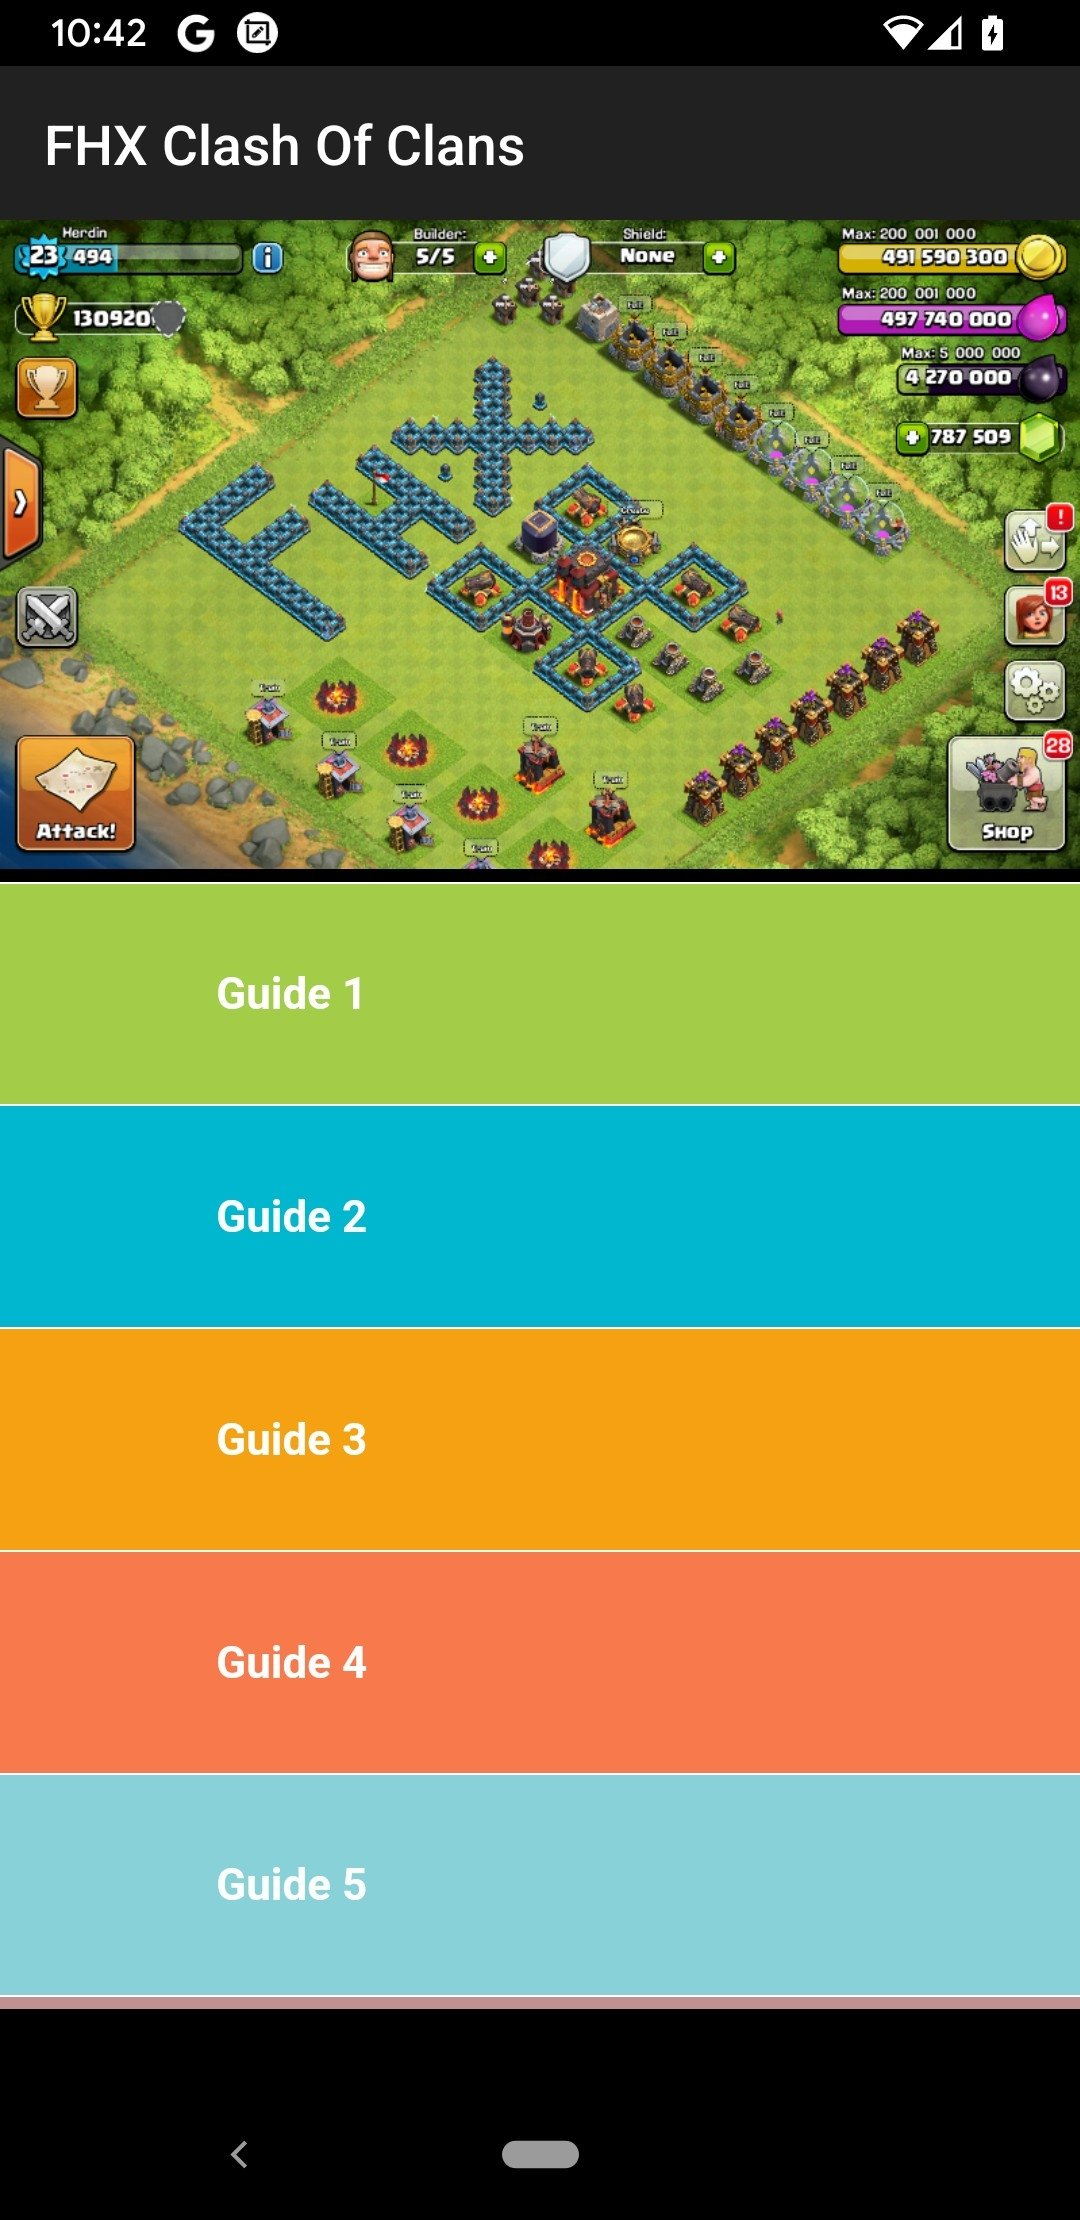 FHX Clash Of Clans Android image 5